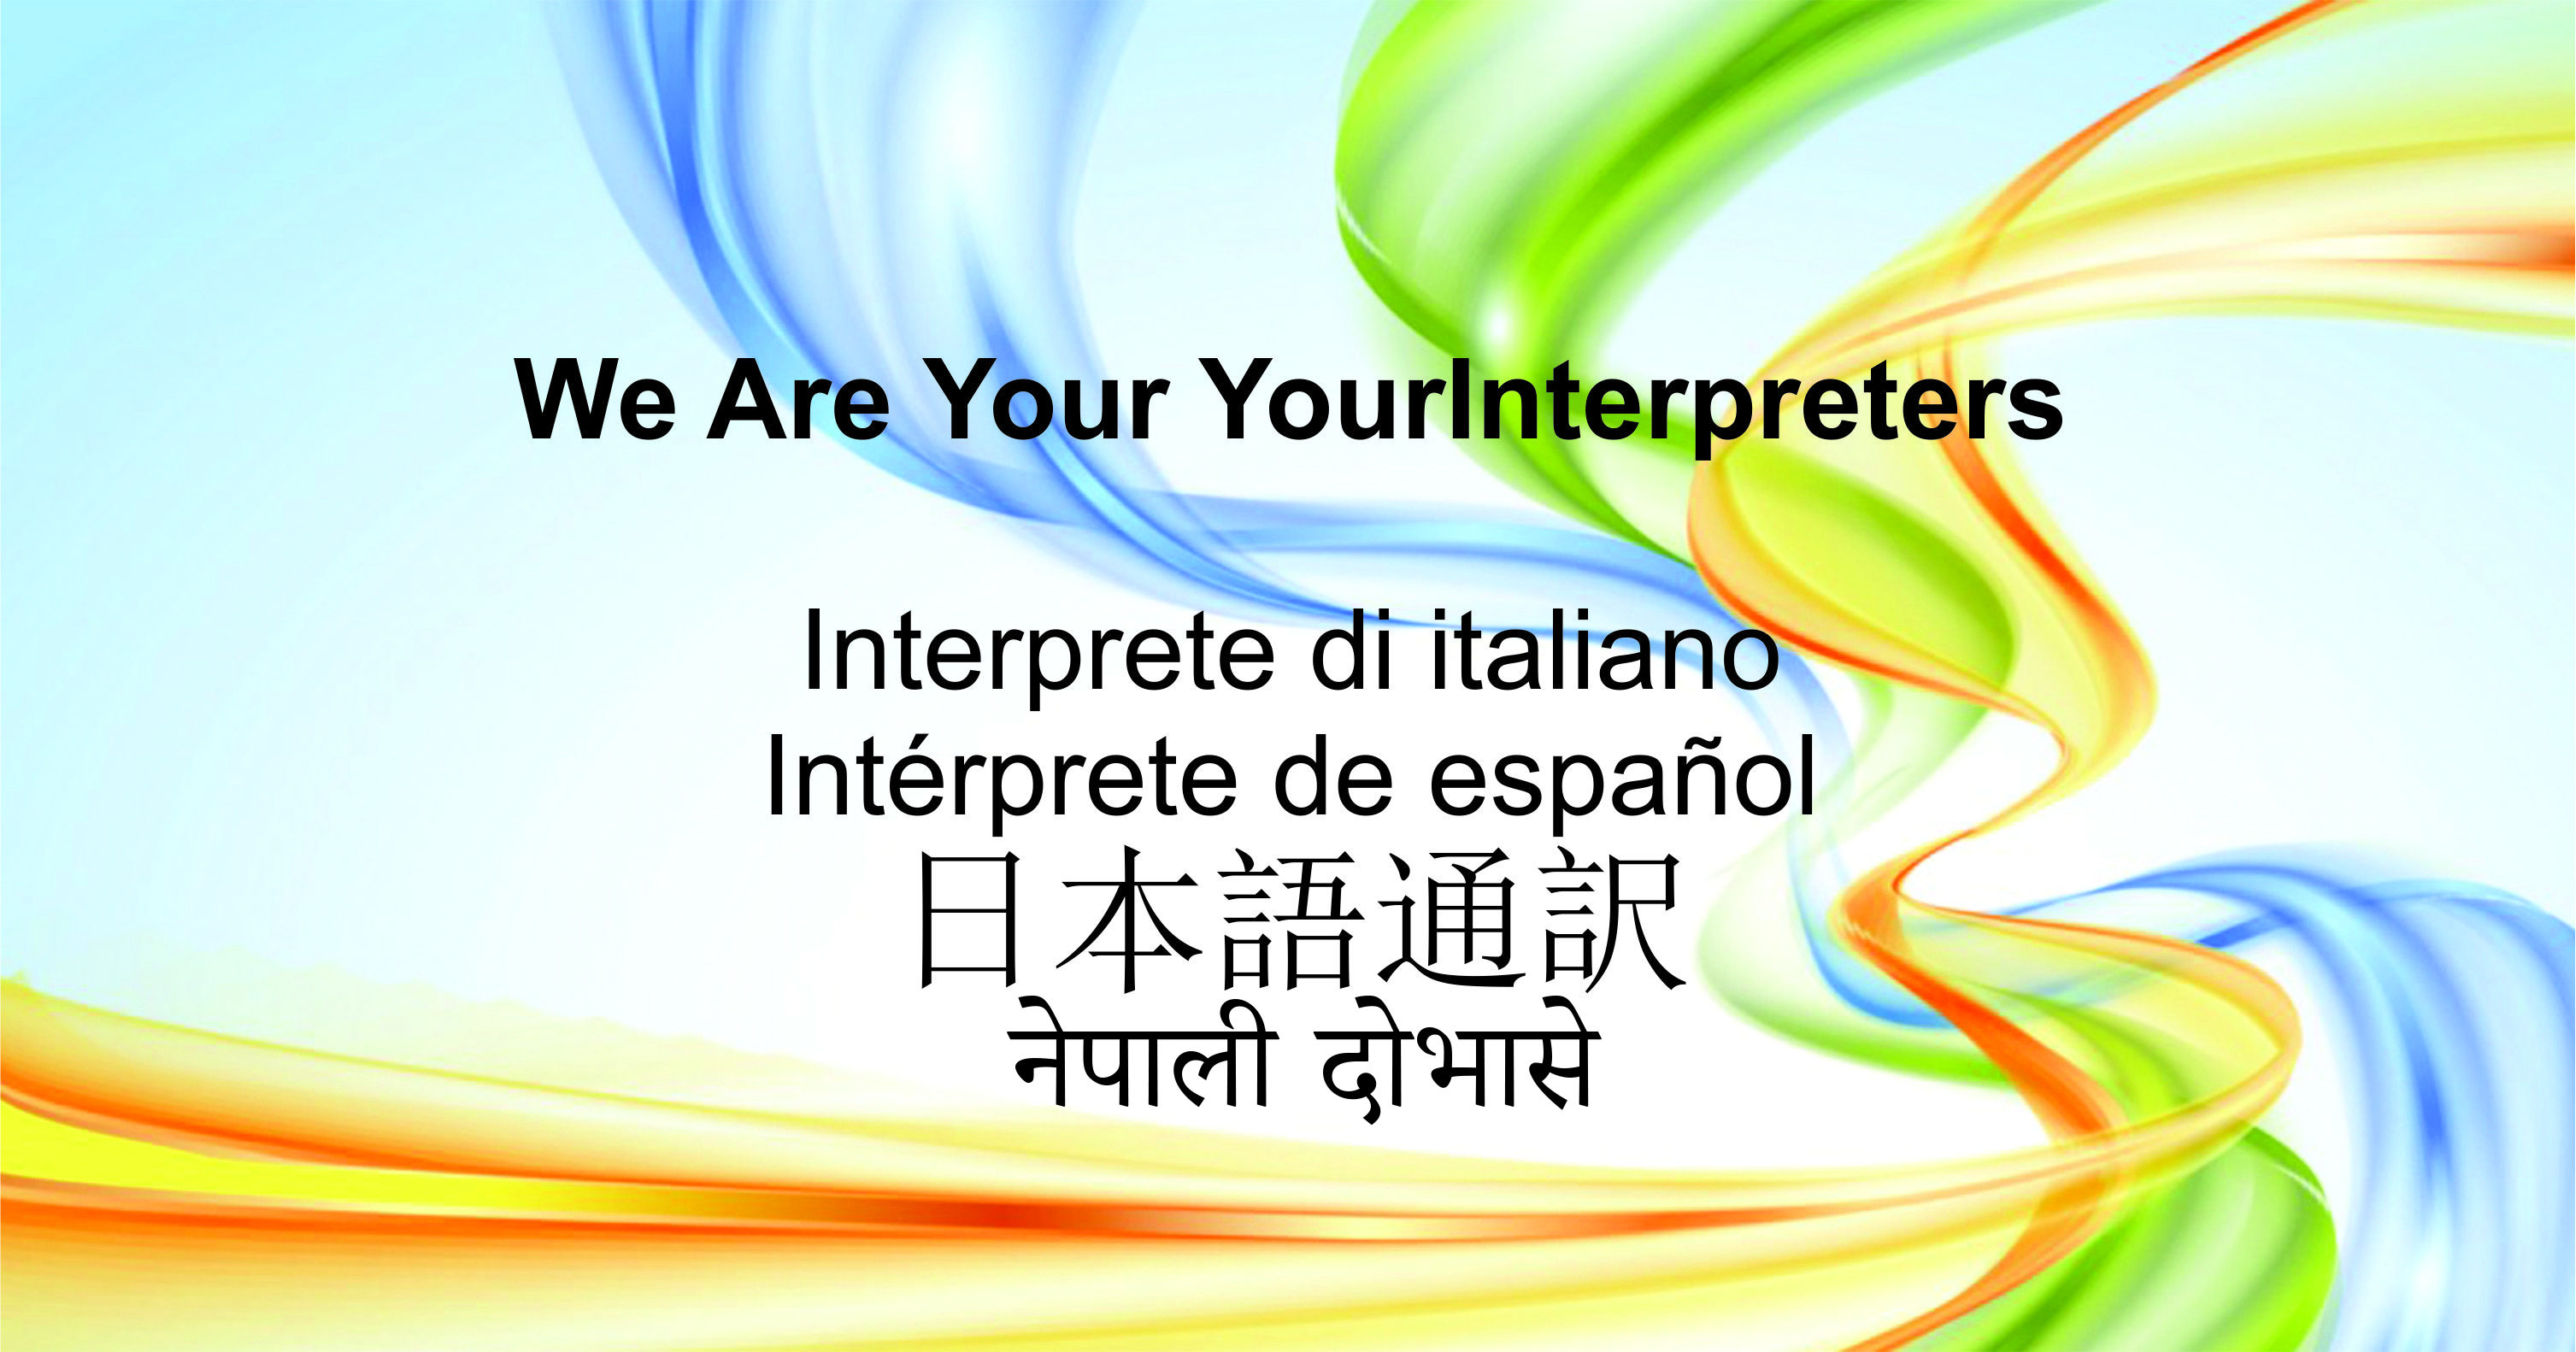 Contact YourInterpreters.com, a Leader In Interpretation Services!